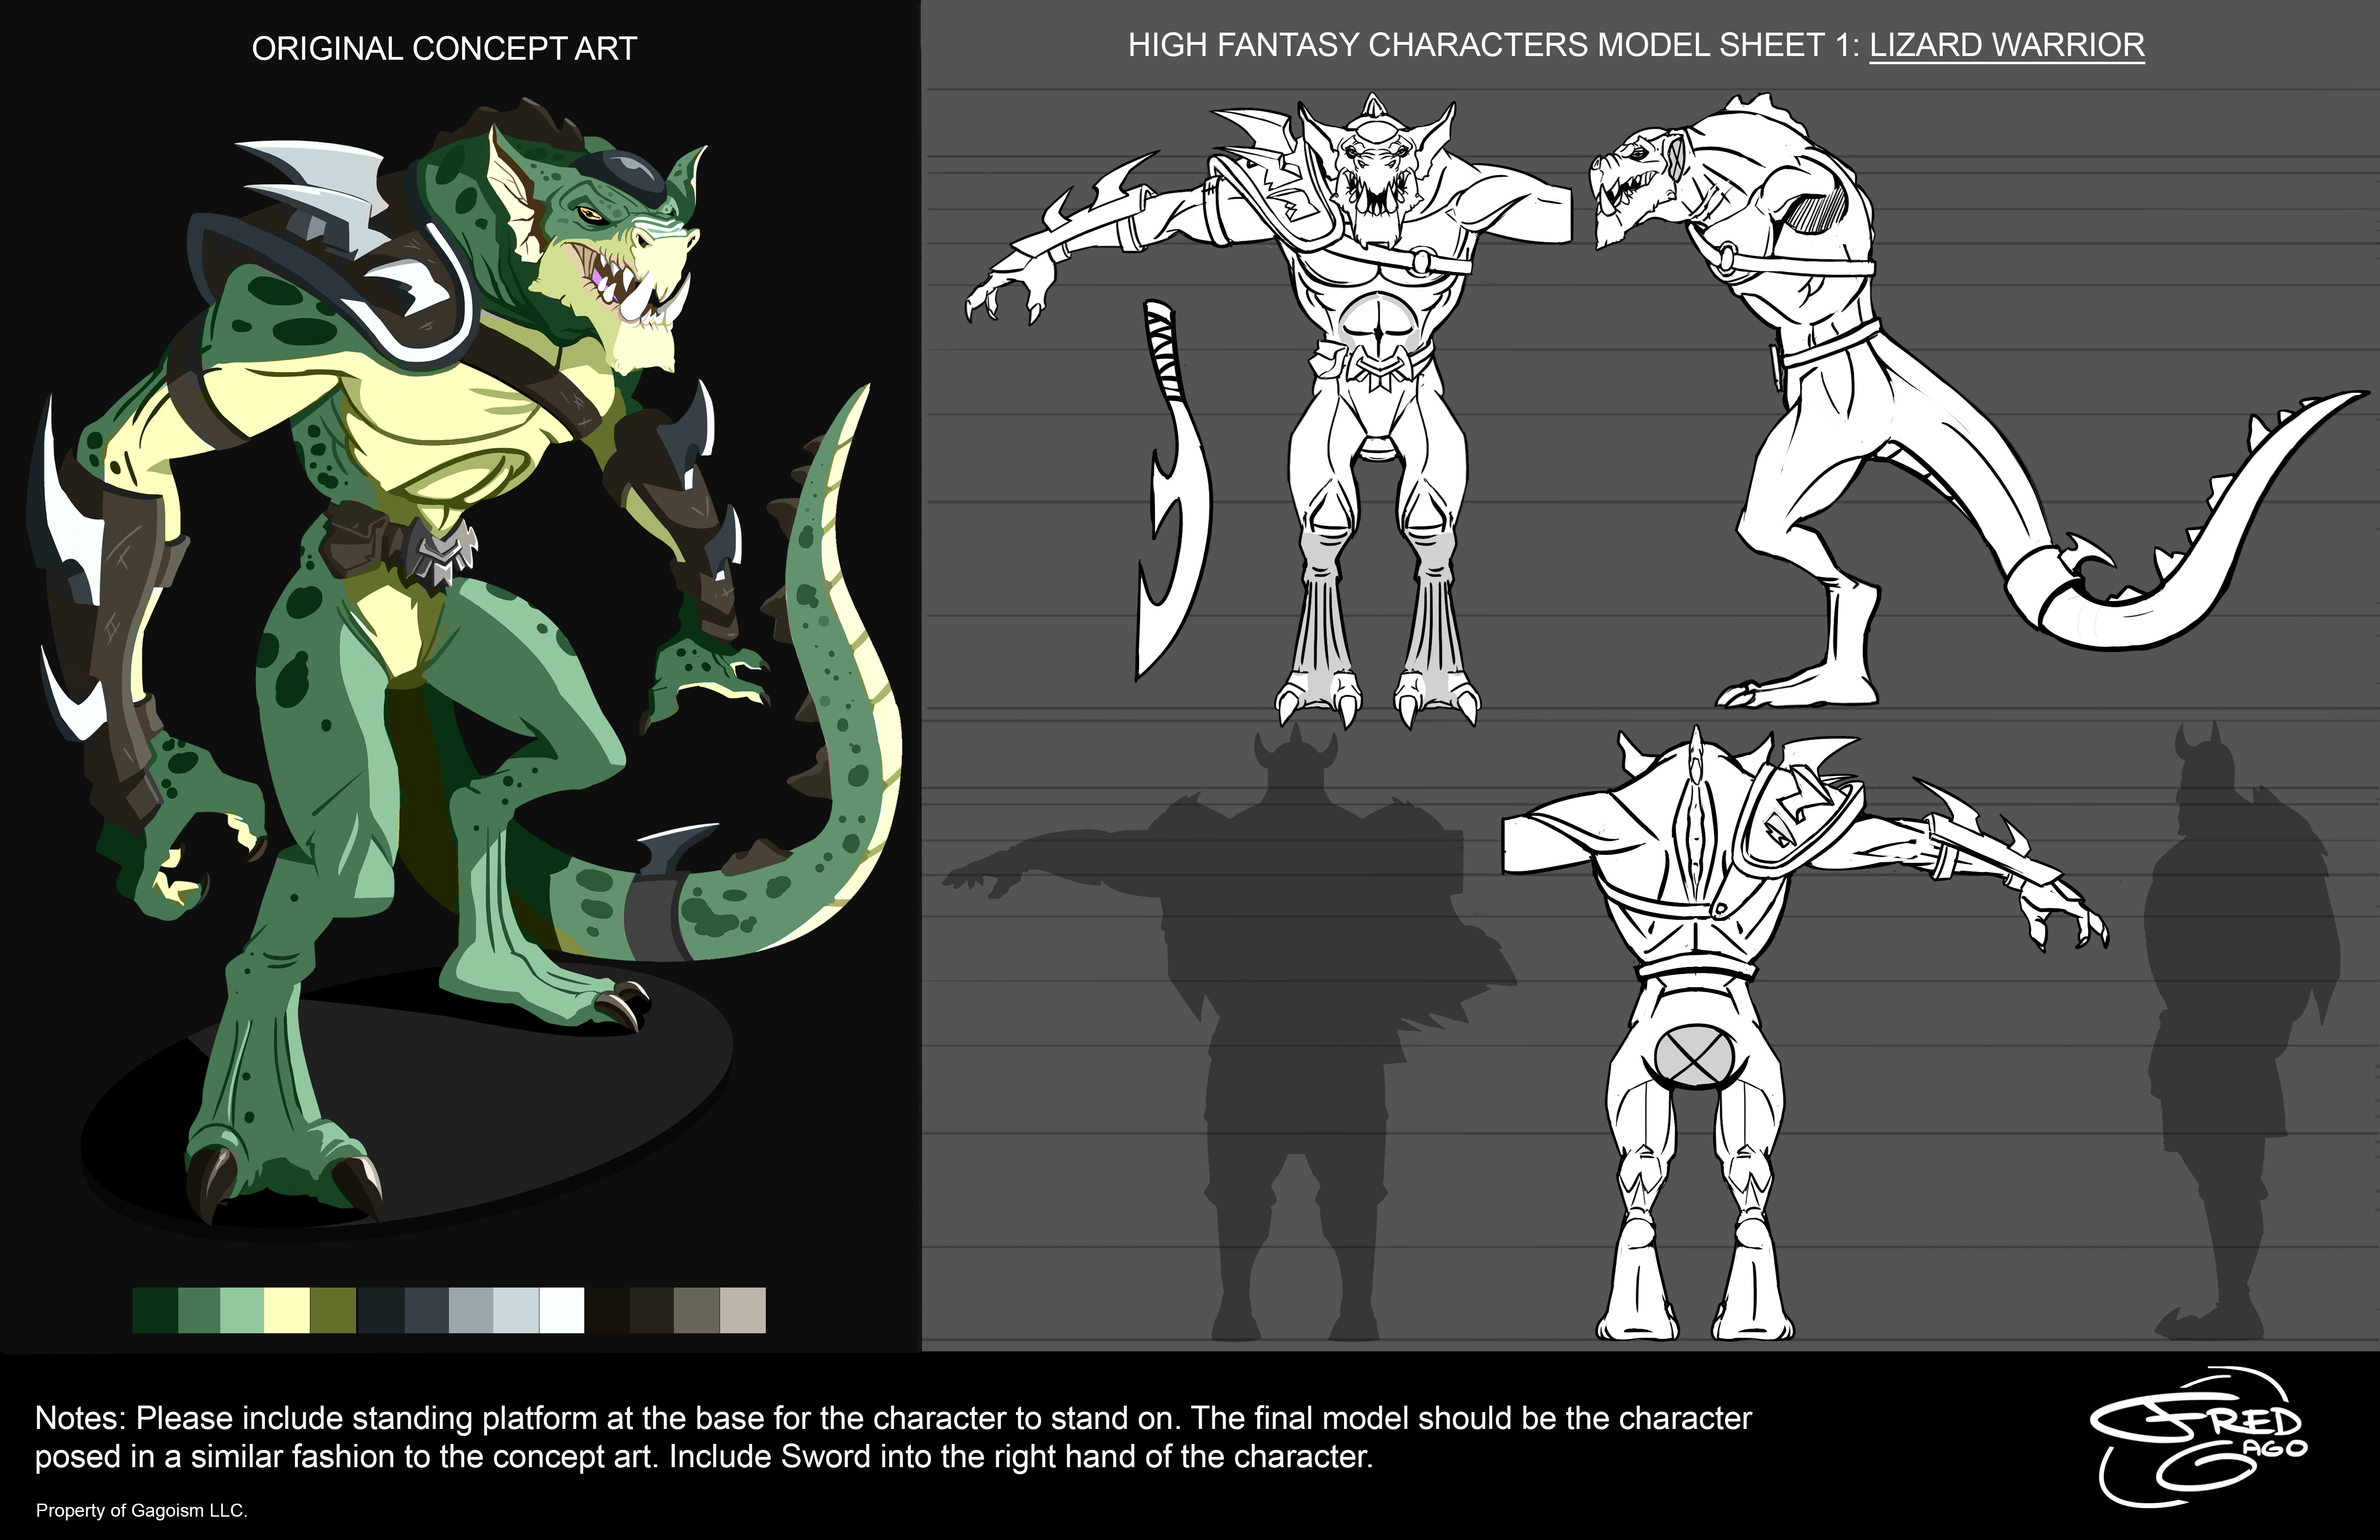 Lizard_Warrior_ModelSheet